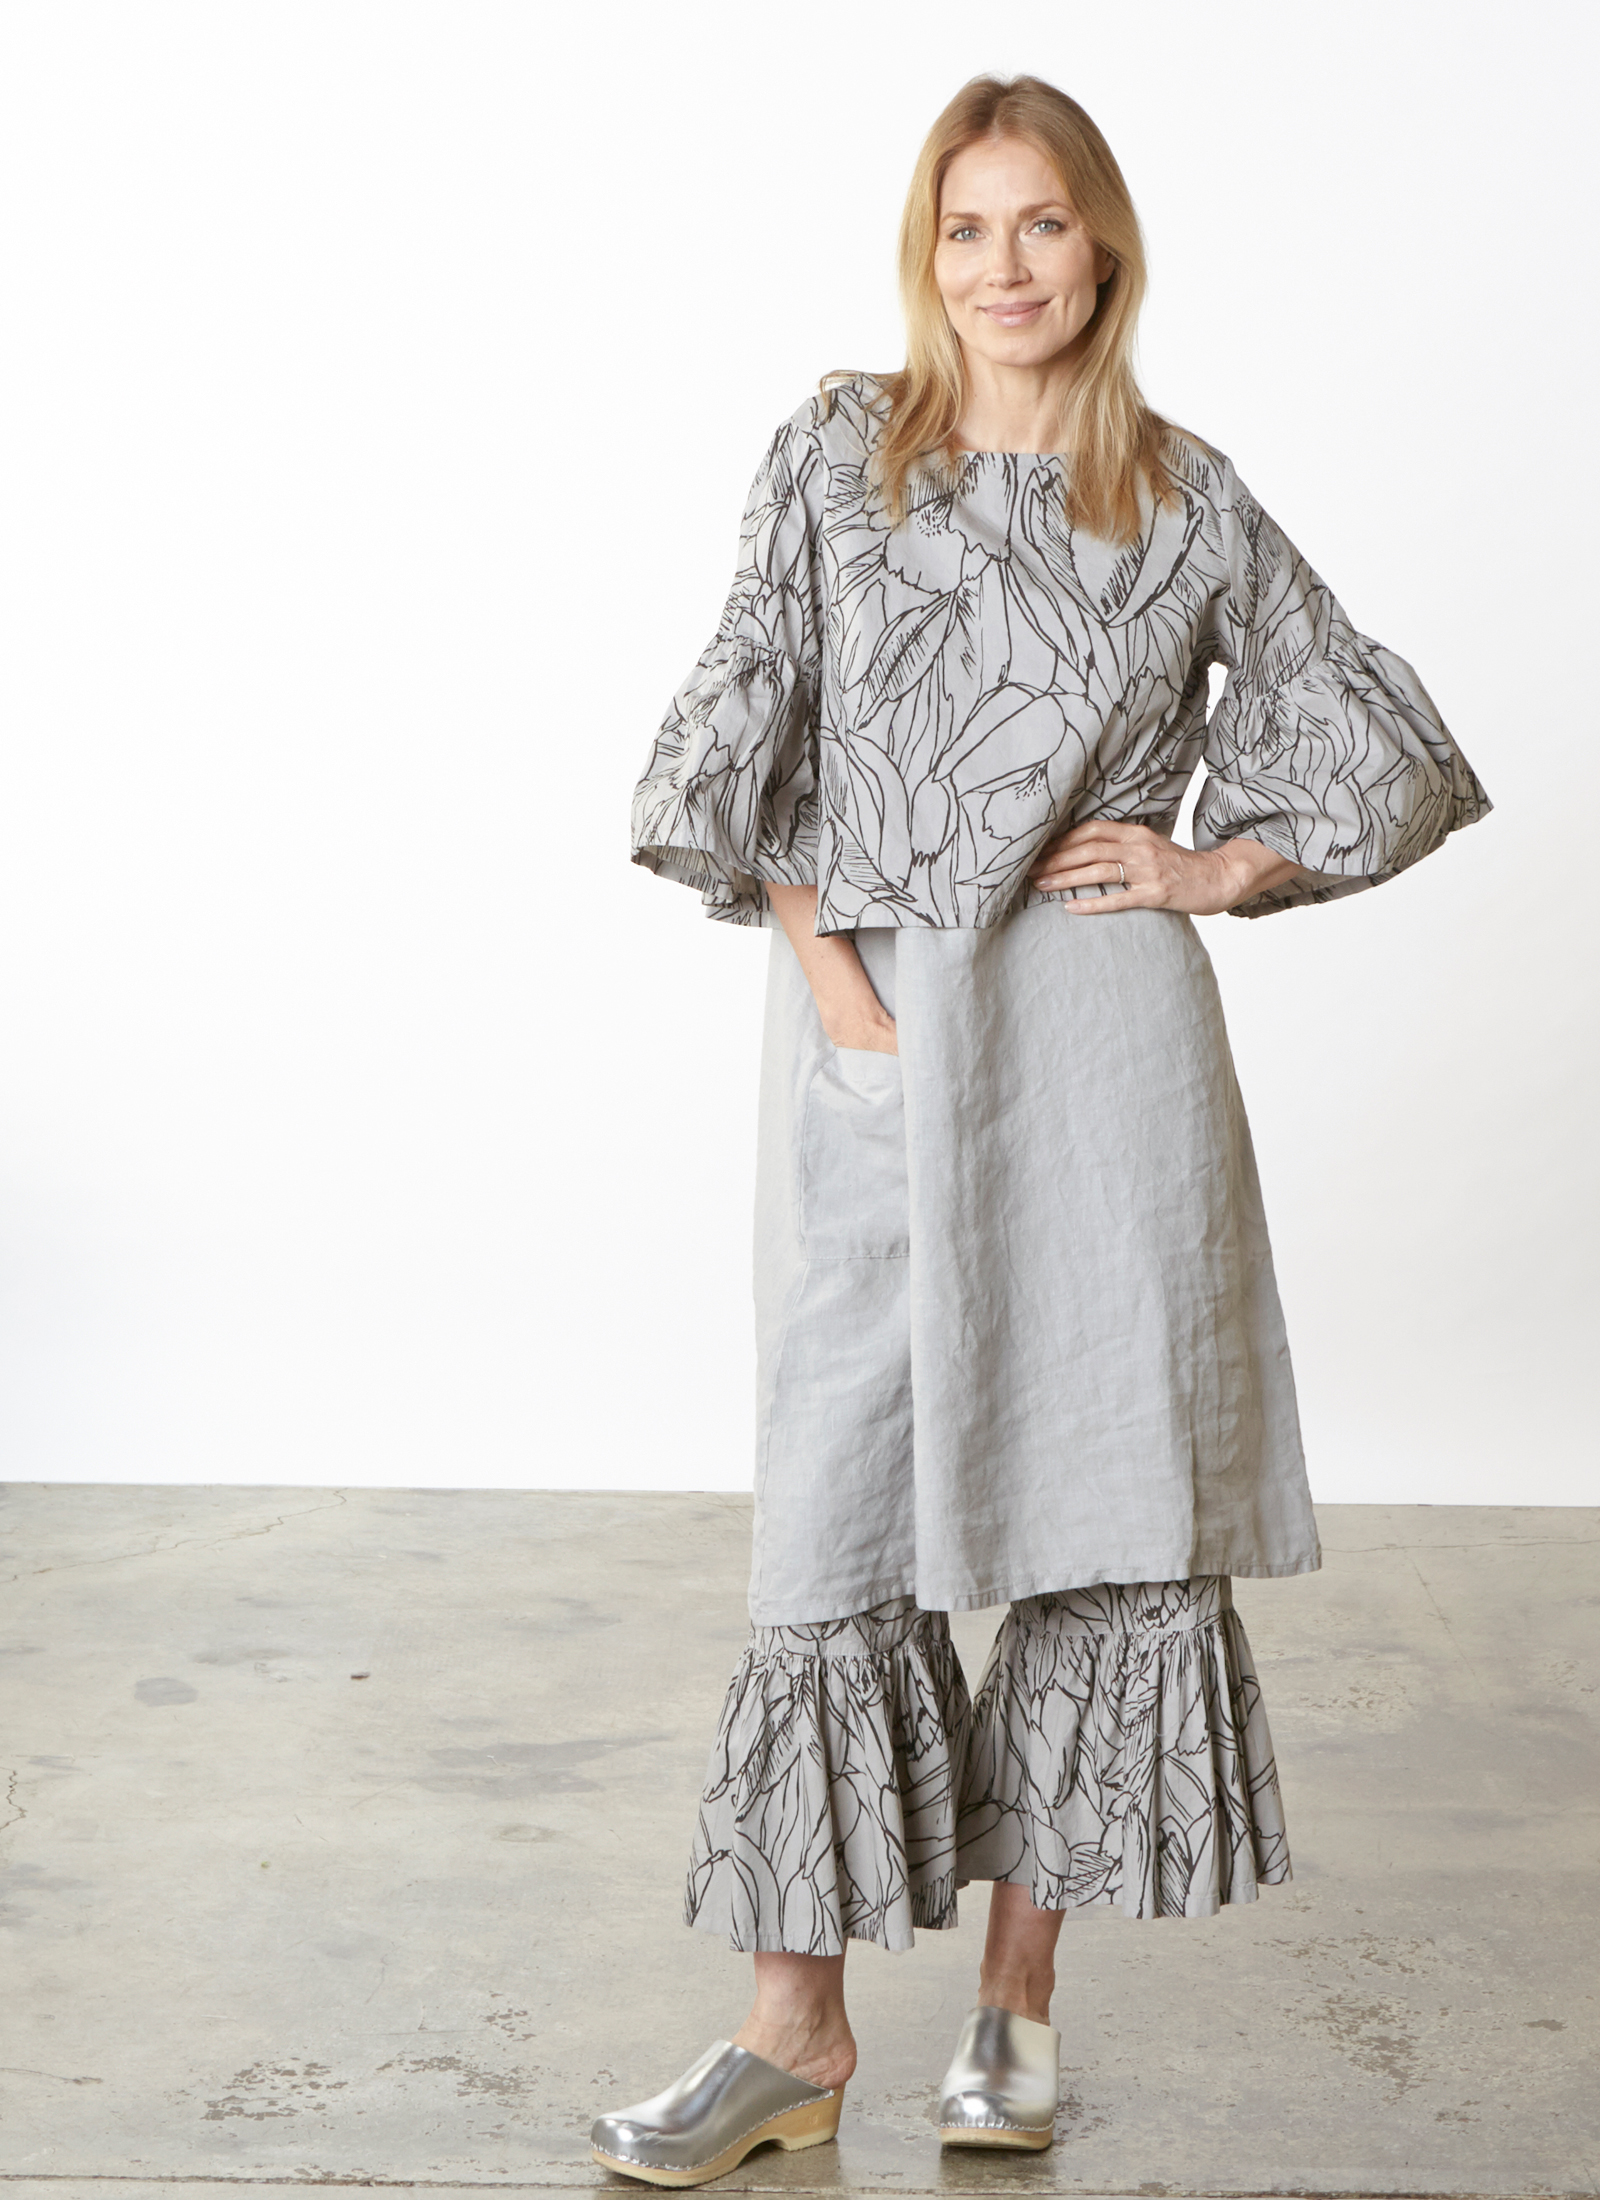 Frida Shirt, Ruffle Pant in Pier Flower Poplin, Luella Dress in Pier Light Linen